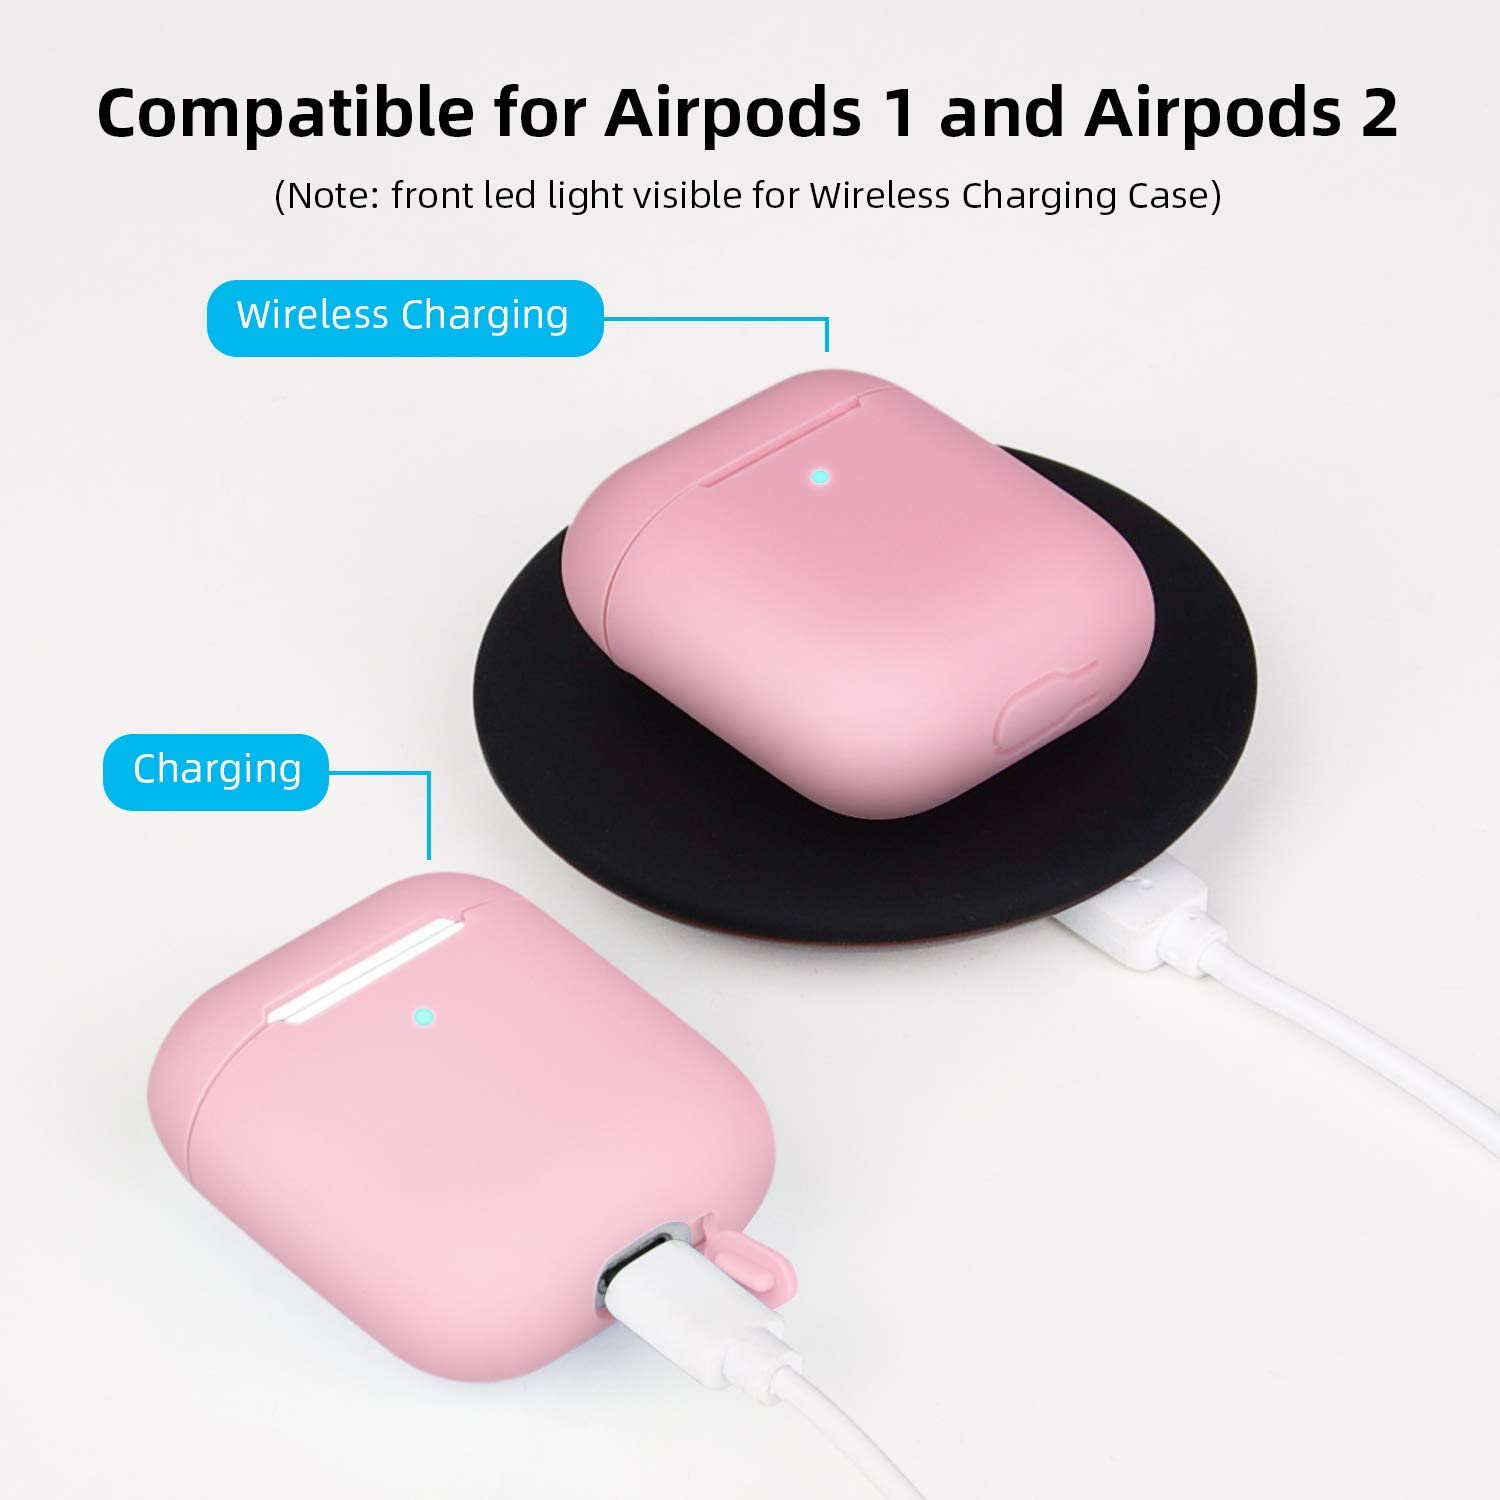 Pink/&Mint Green 2 Packs Airpods Skin for Apple Airpods 1 /& 2 Wireless Charging Case,RTAKO AirPods Case Protective Cover Silicone Skin Waterproof Airpods Accessories 9 in 1 New Airpods Case Cover